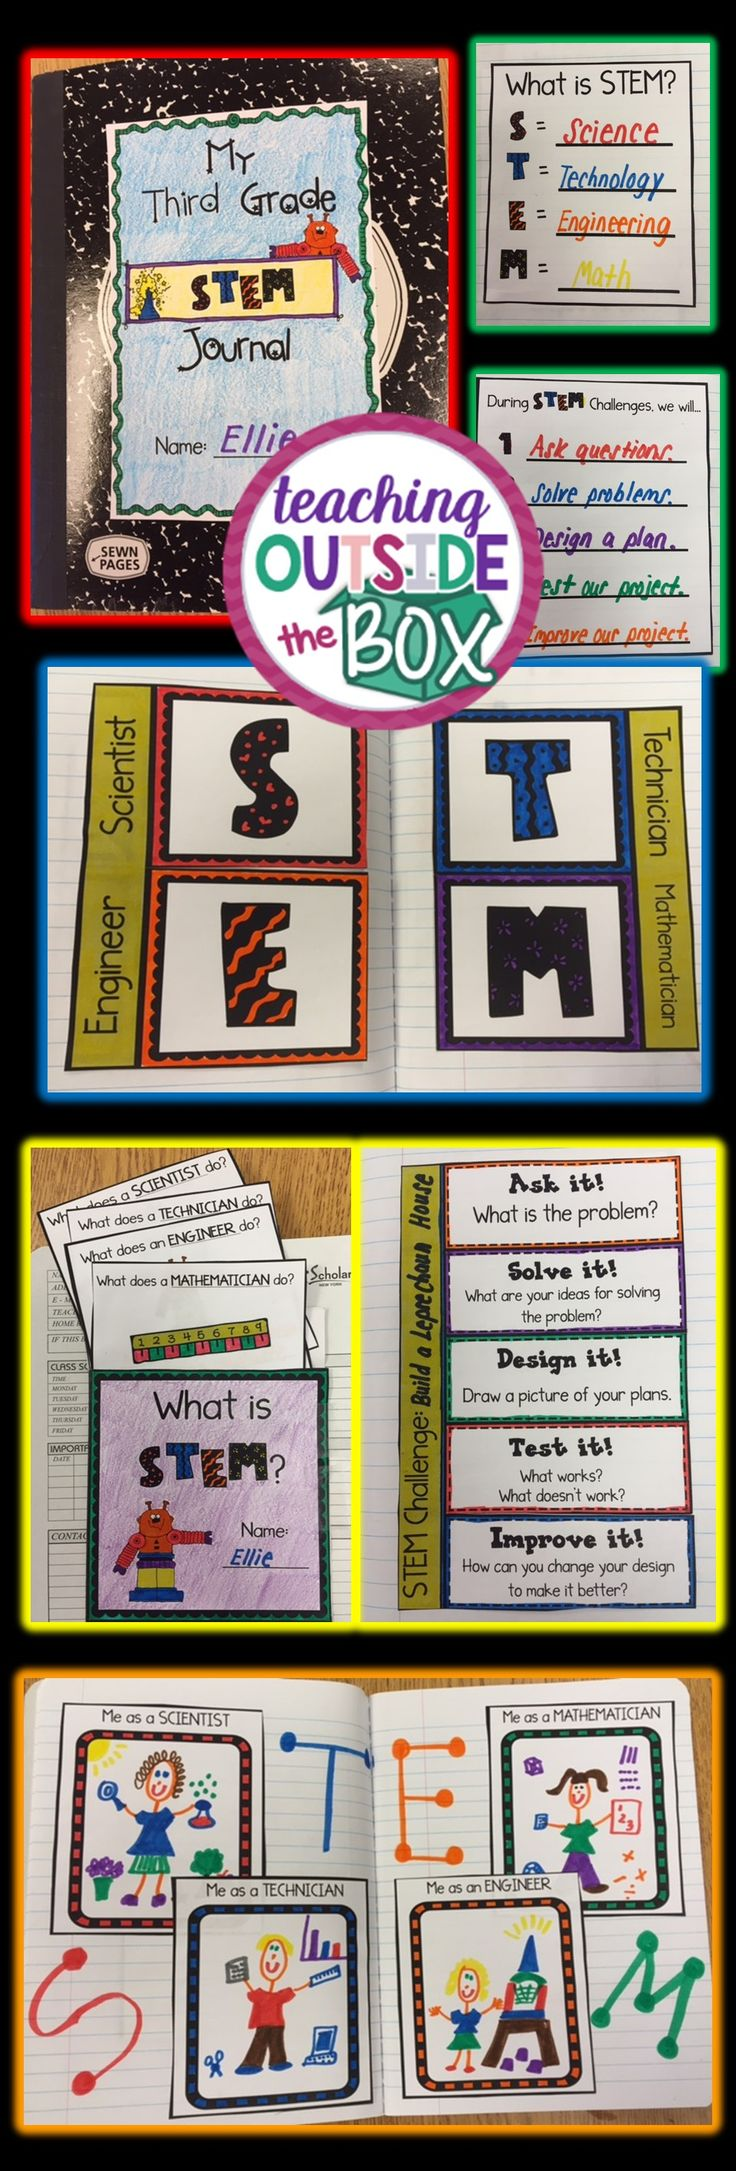 STEM Notebooking Made SIMPLE! Tips and Tools for Elementary Students by Brooke Brown